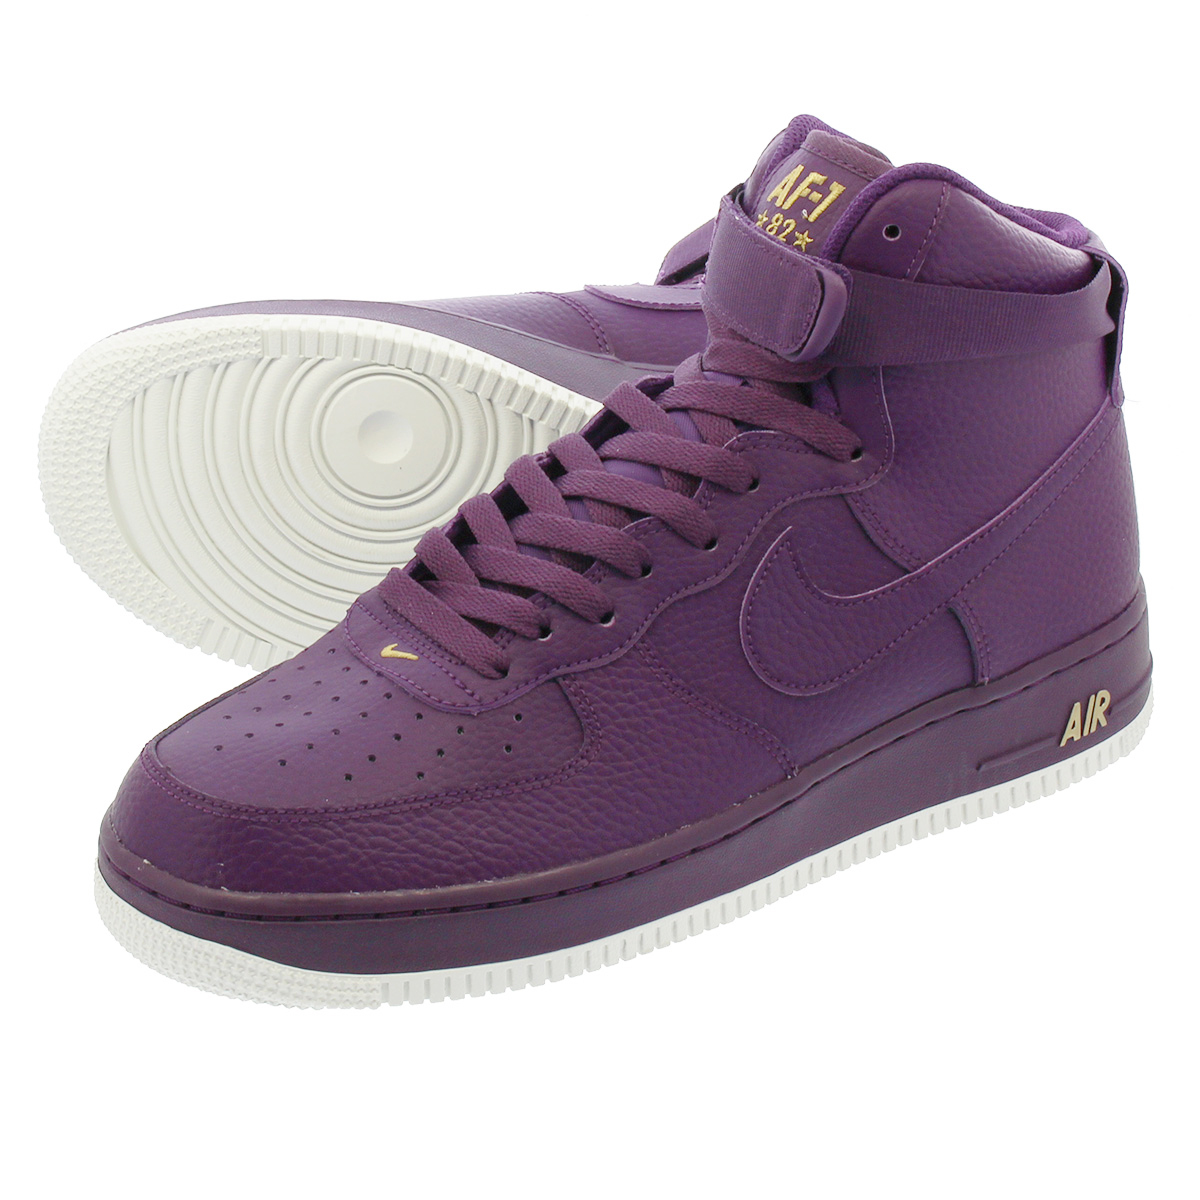 details for skate shoes united kingdom NIKE AIR FORCE 1 HIGH 07耐吉空軍1高07 NIGHT PURPLE/SUMMIT WHITE/METALLIC GOLD  315121-500